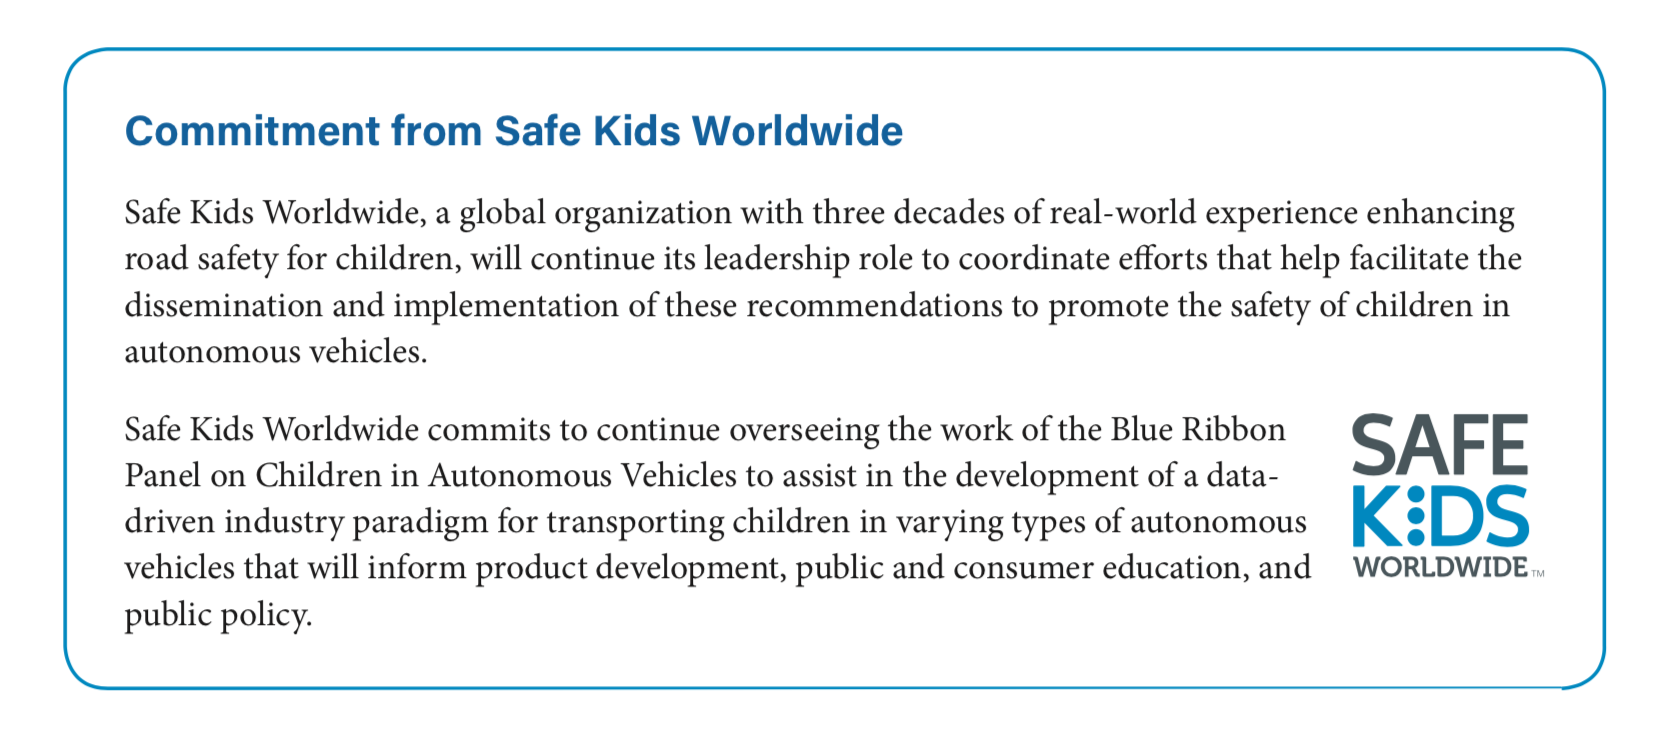 Safe Kids Worldwide Commitment to Children in Autonomous Vehicles